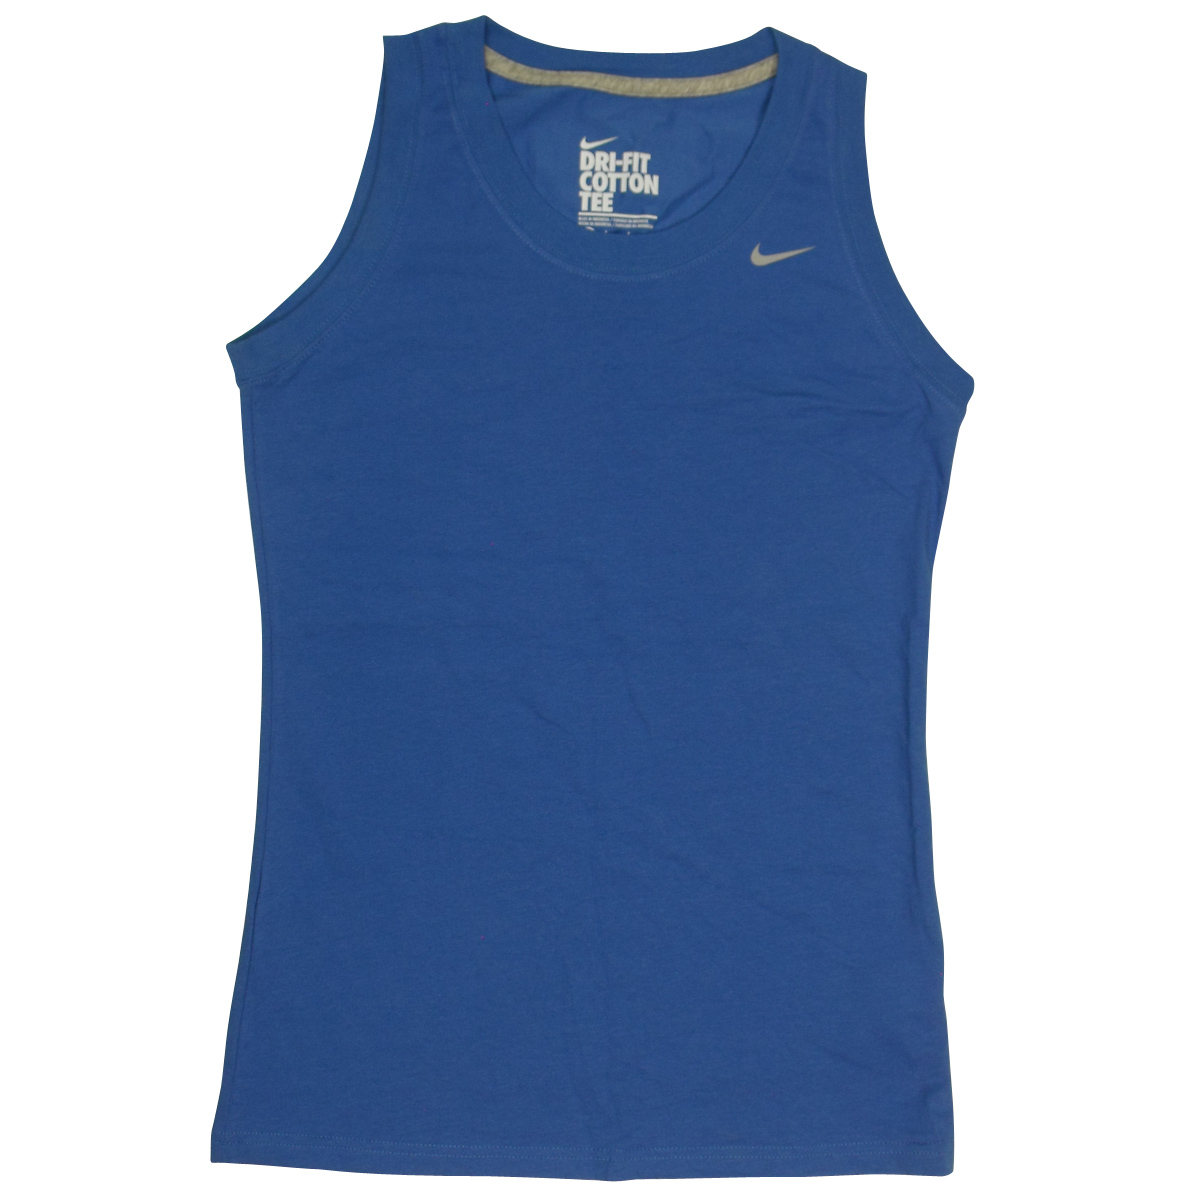 Womens nike dry dri fit running shirt vest top t shirt for Best athletic dress shirts